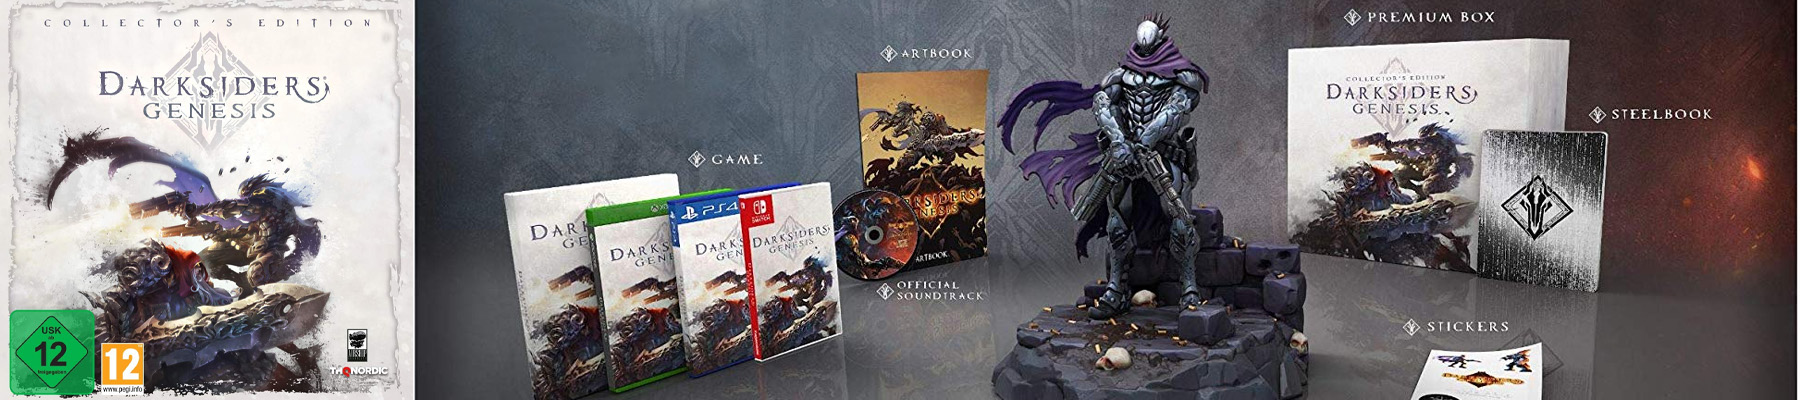 Darksiders Genesis Collector's Edition